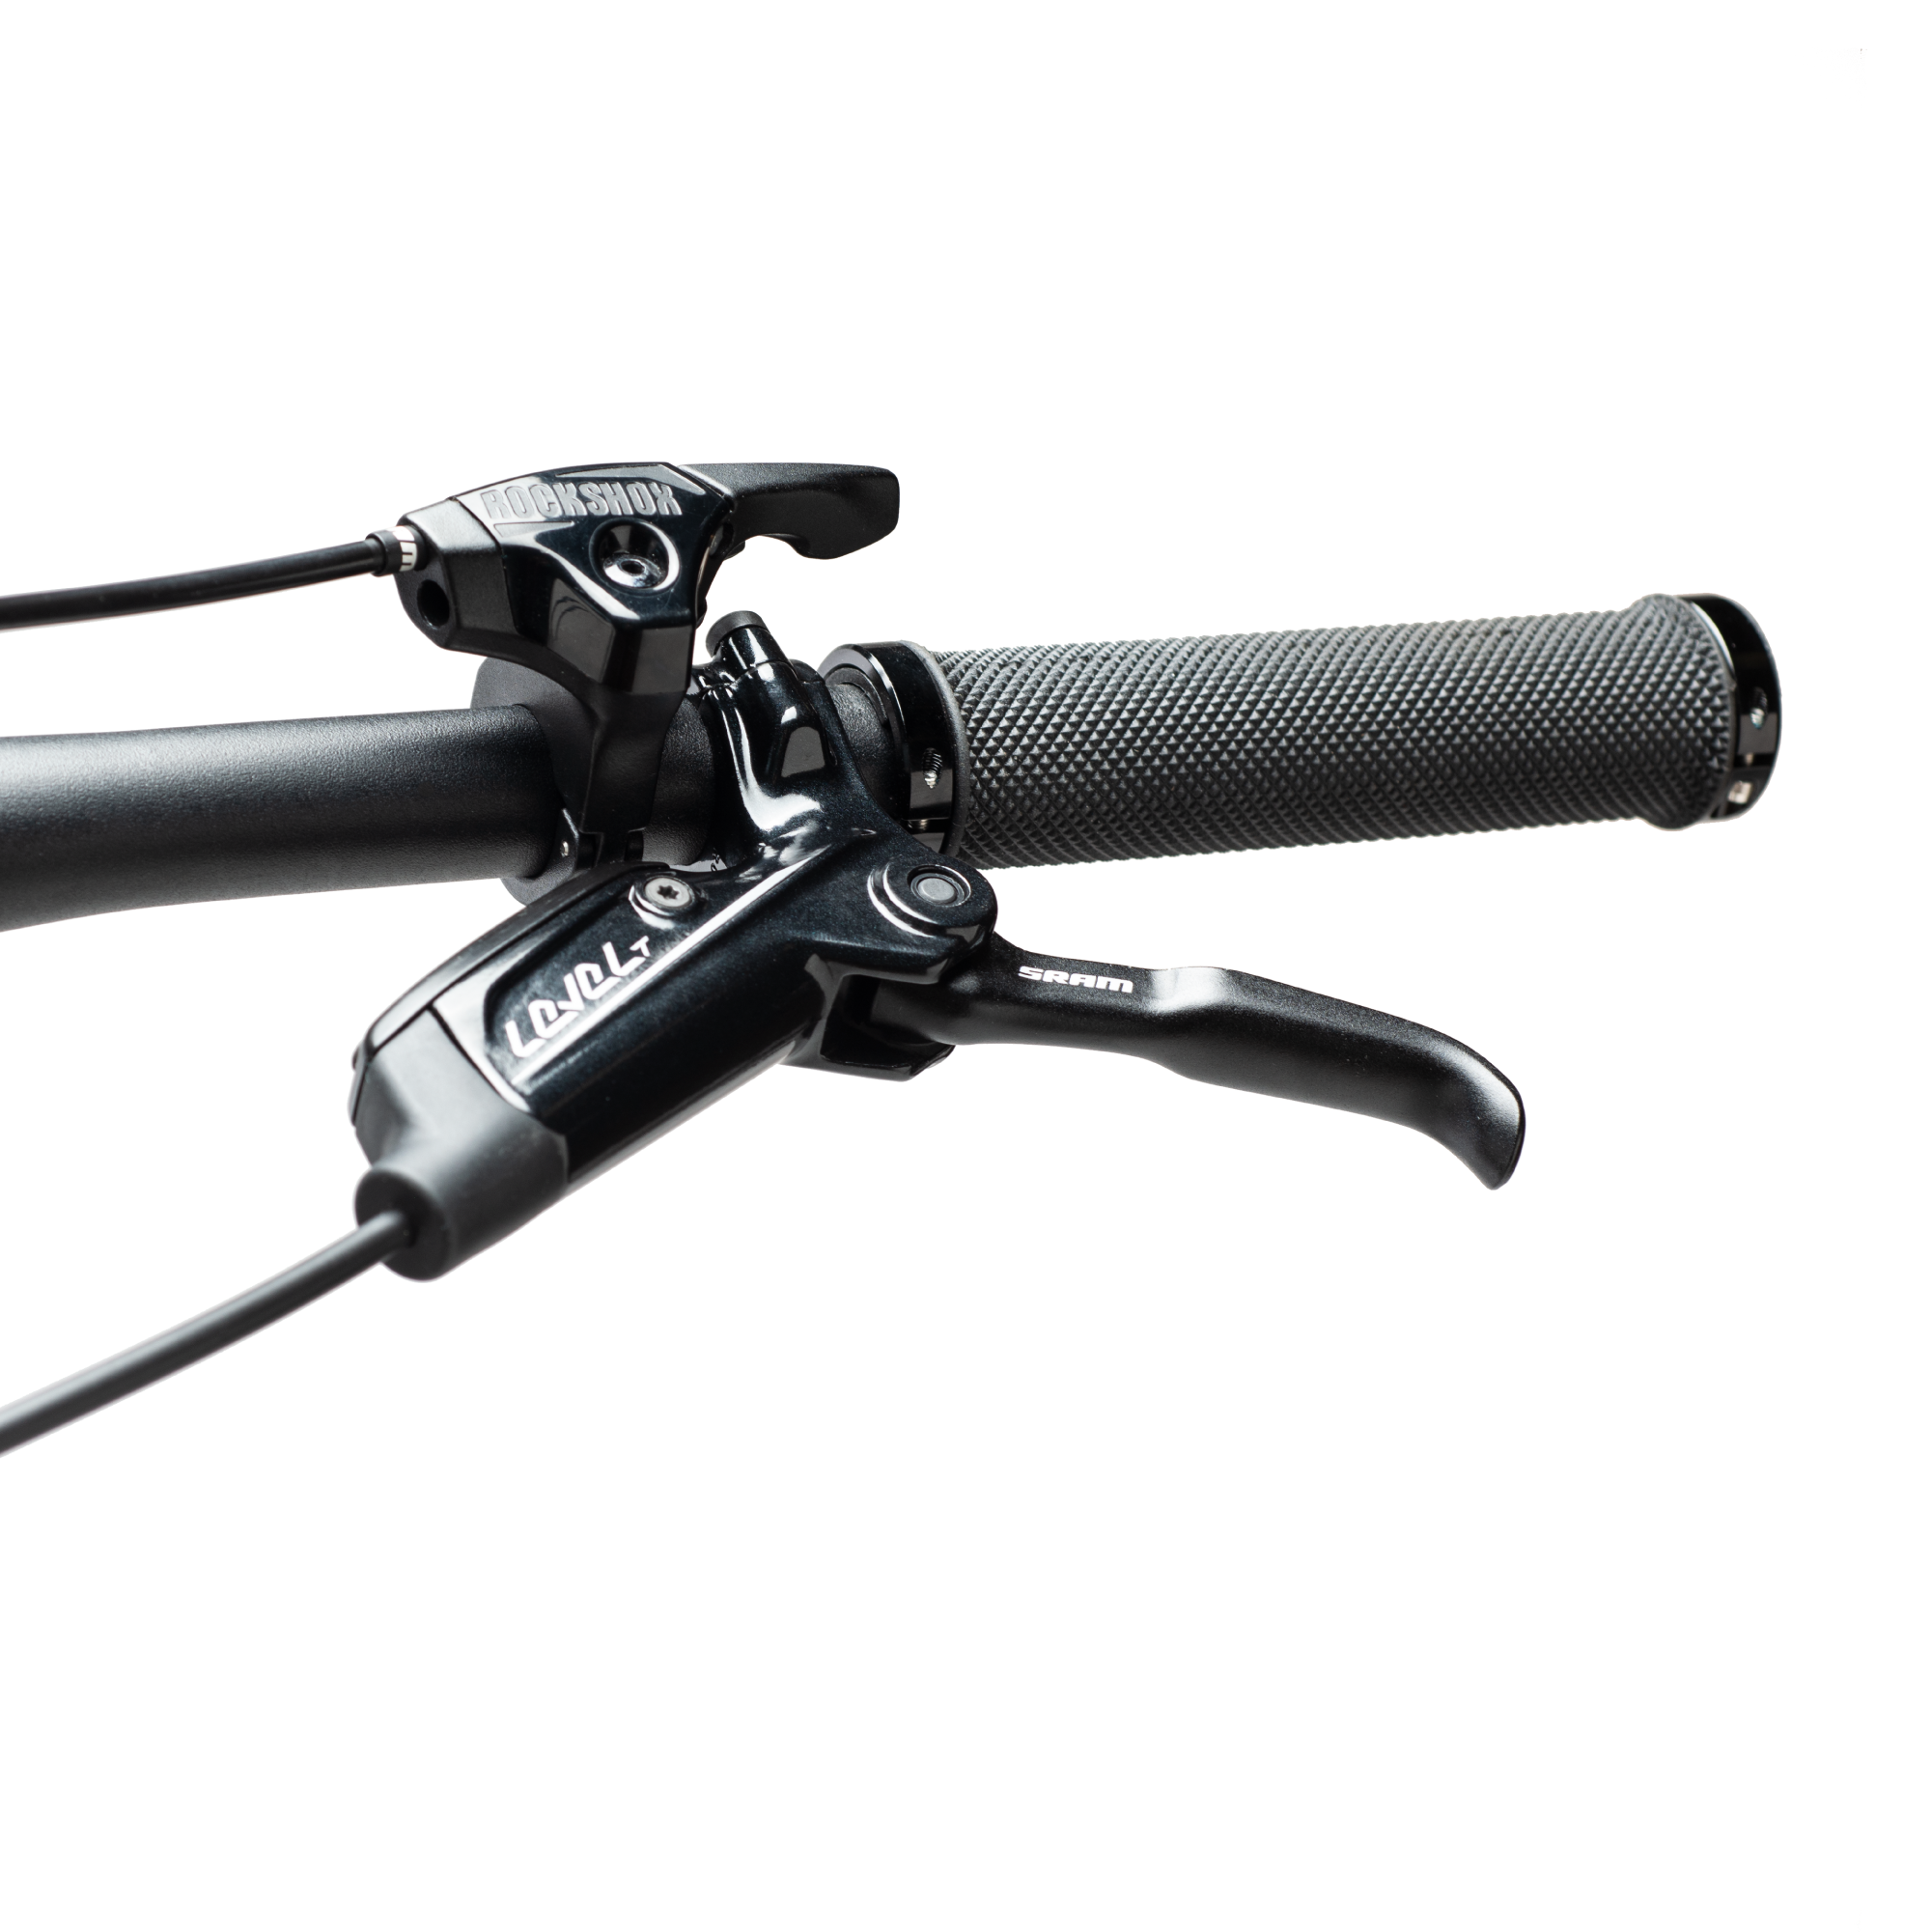 Airborne Hob Goblin 29 Light-Travel Carbon XC Full Suspension